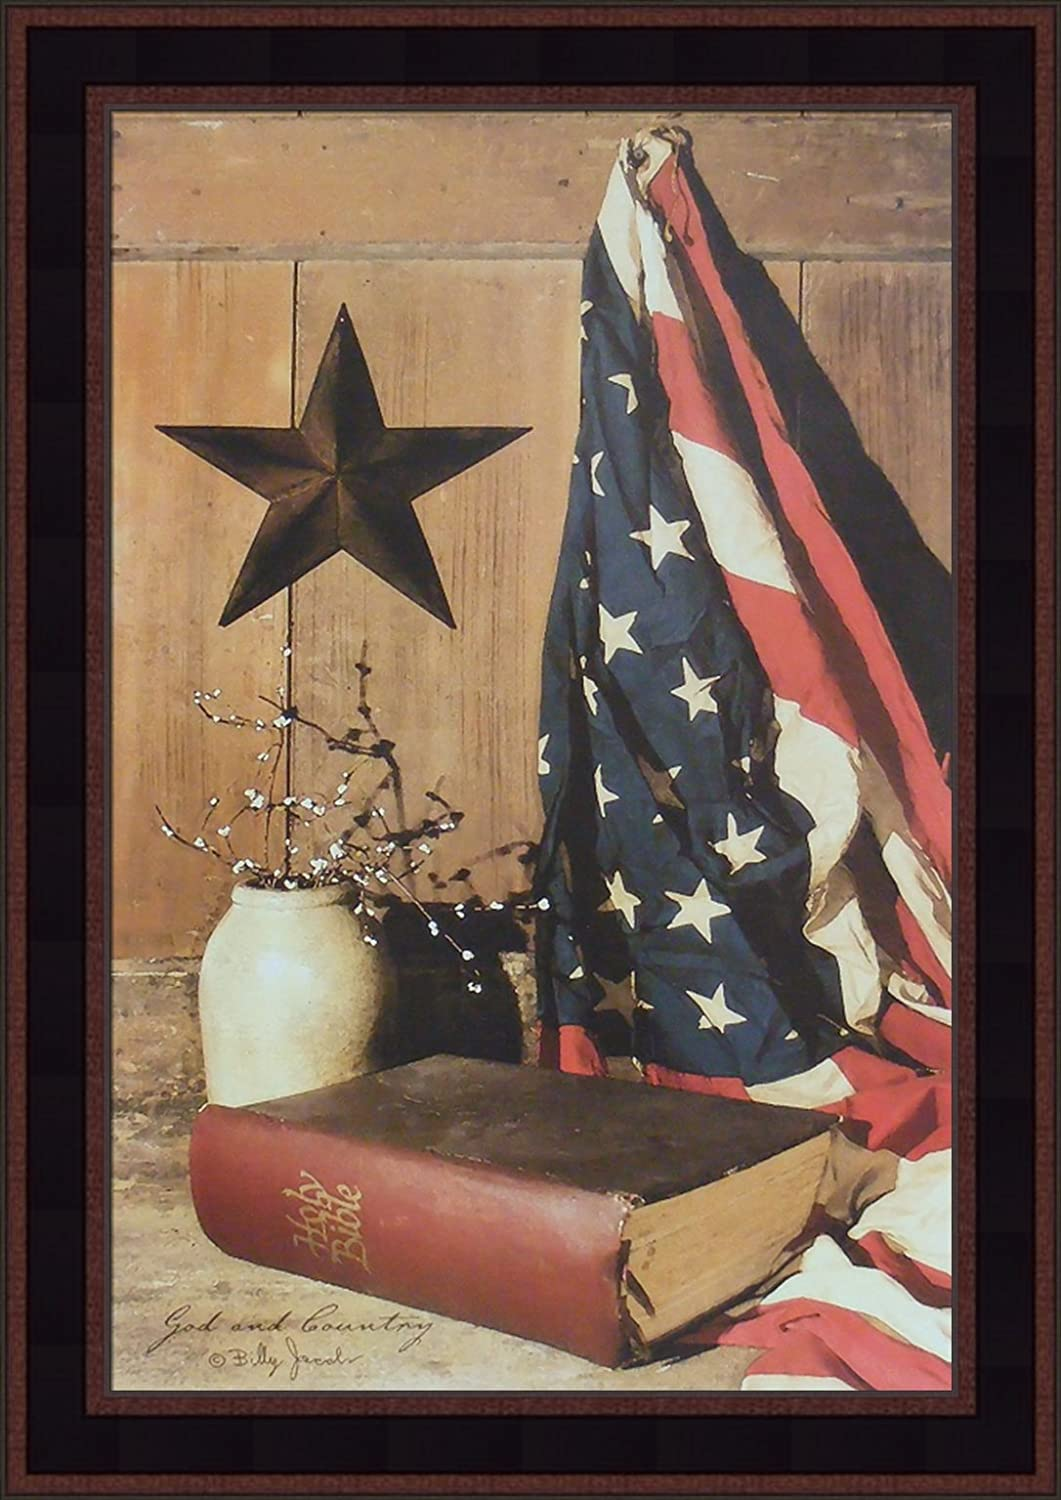 Home Cabin Décor God and Country by Billy Jacobs 15x21 Americana American Flag Bible Star Crock Primitive Folk Art Framed Print Picture